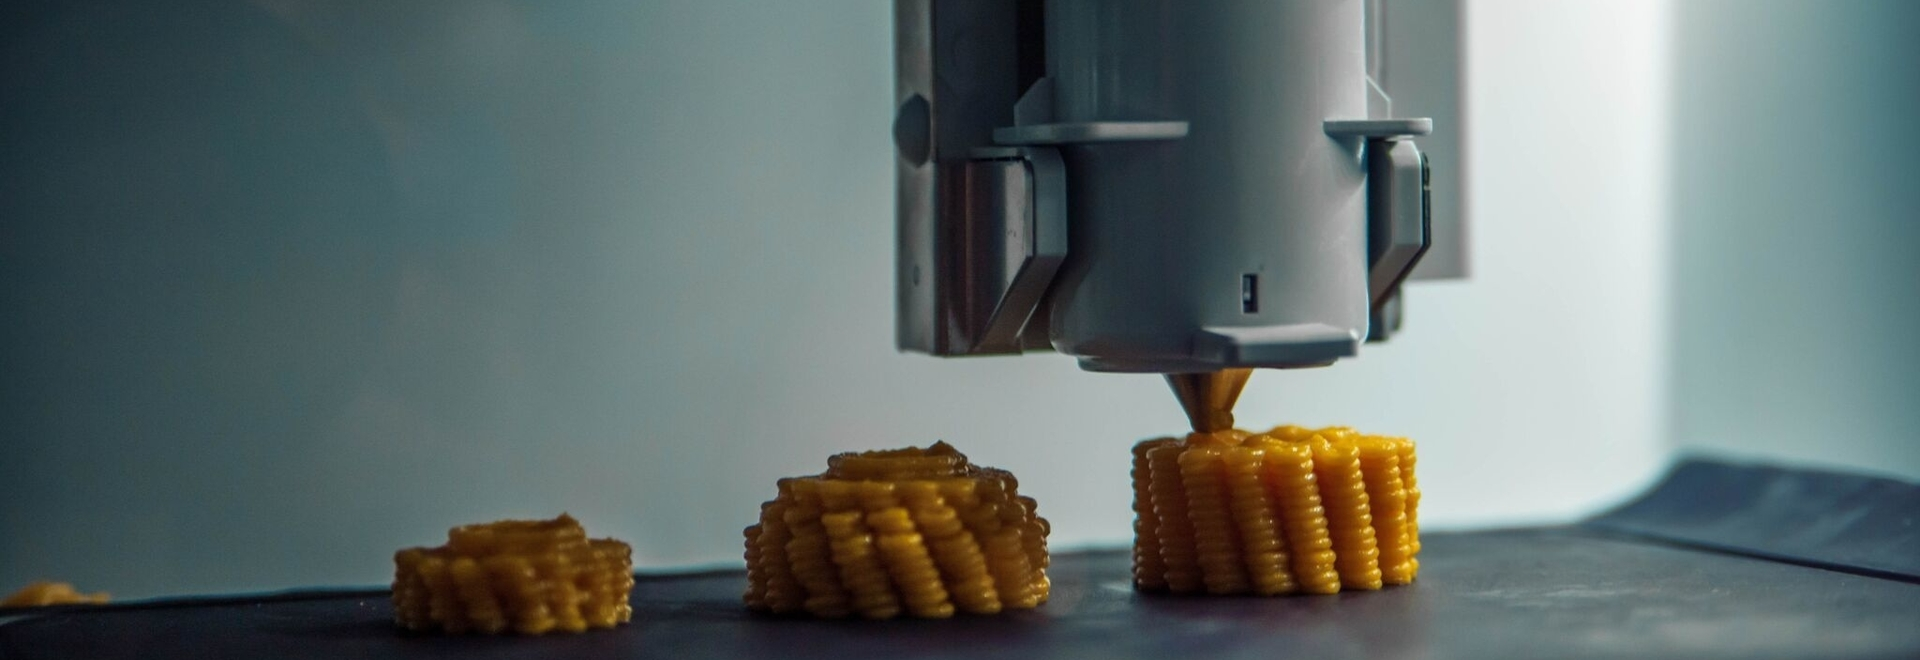 Fast developments in technology have now made it possible for companies to produce food using a number of alternative methods